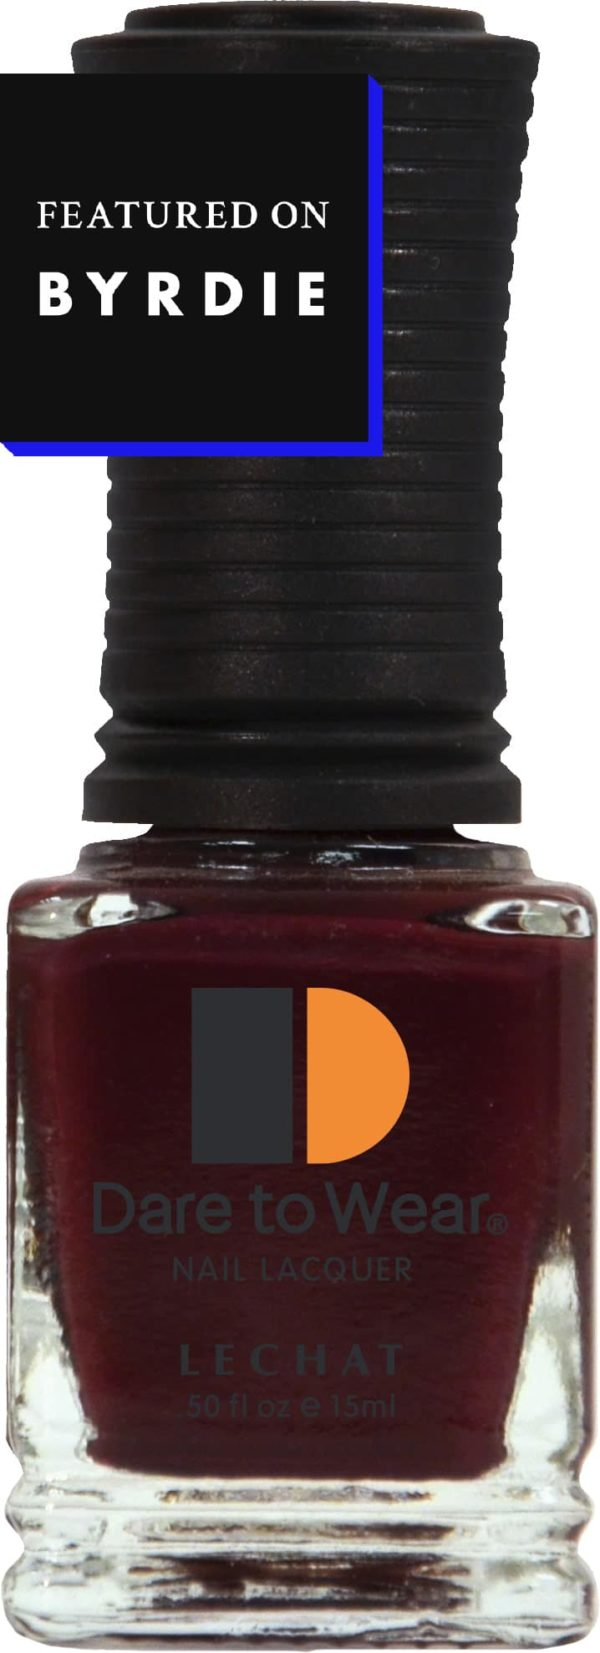 half ounce bottle of Dare to Wear lacquer. Badge near the top says, Featured on Byrdie.